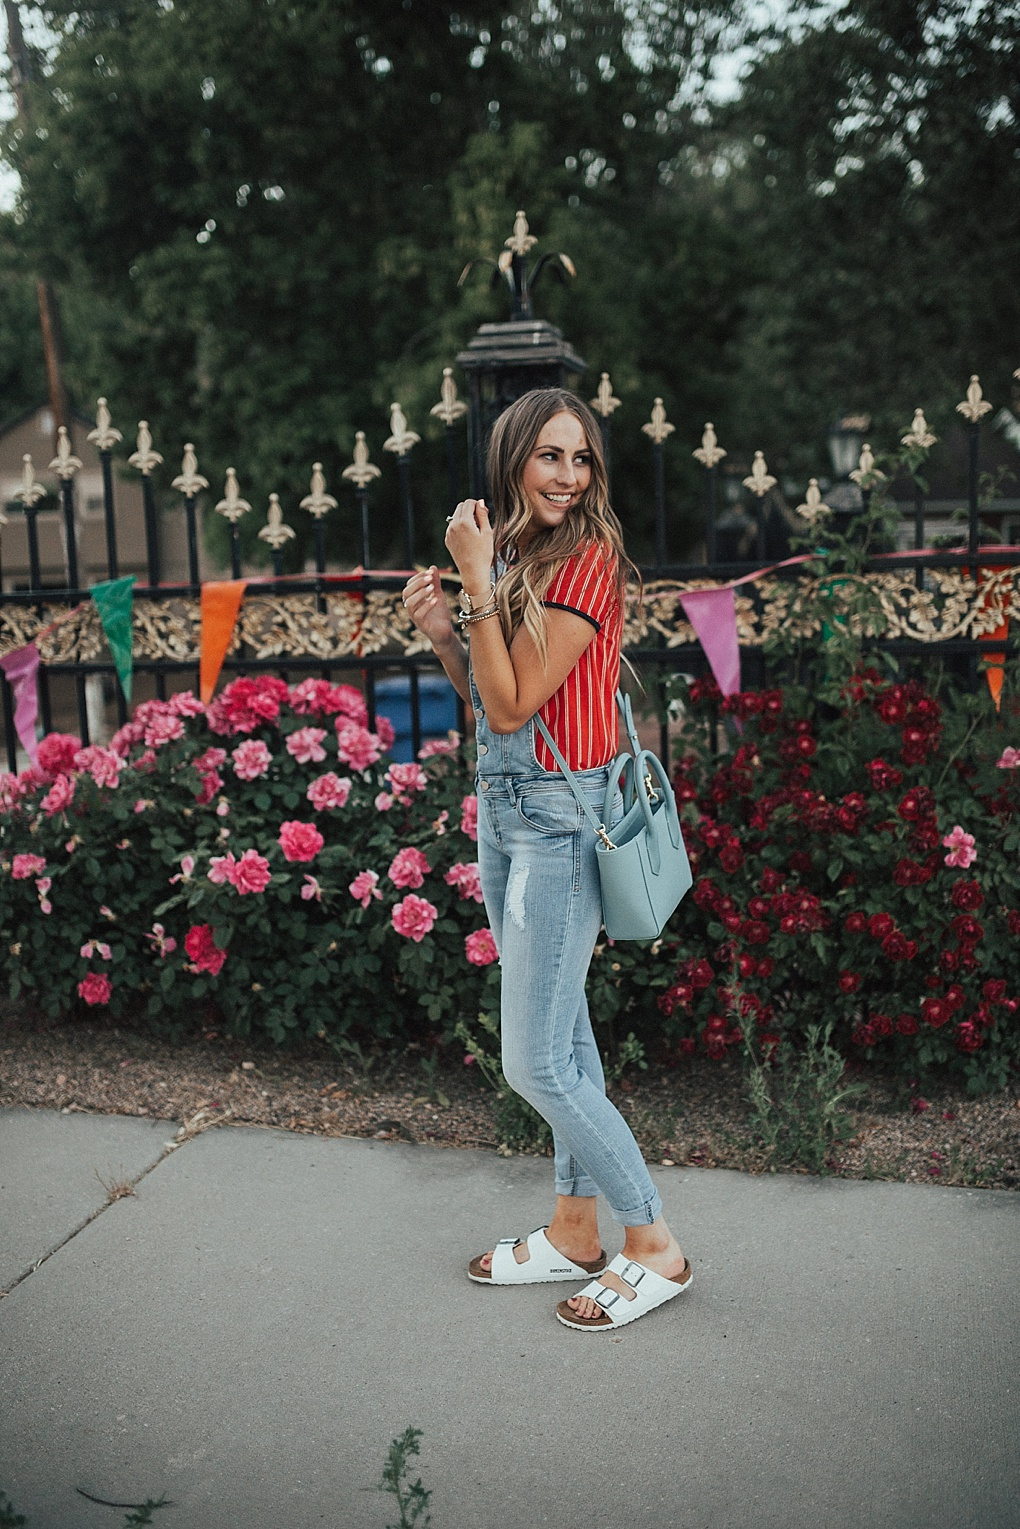 Red Striped Tee + Overalls by Utah fashion blogger Dani Marie